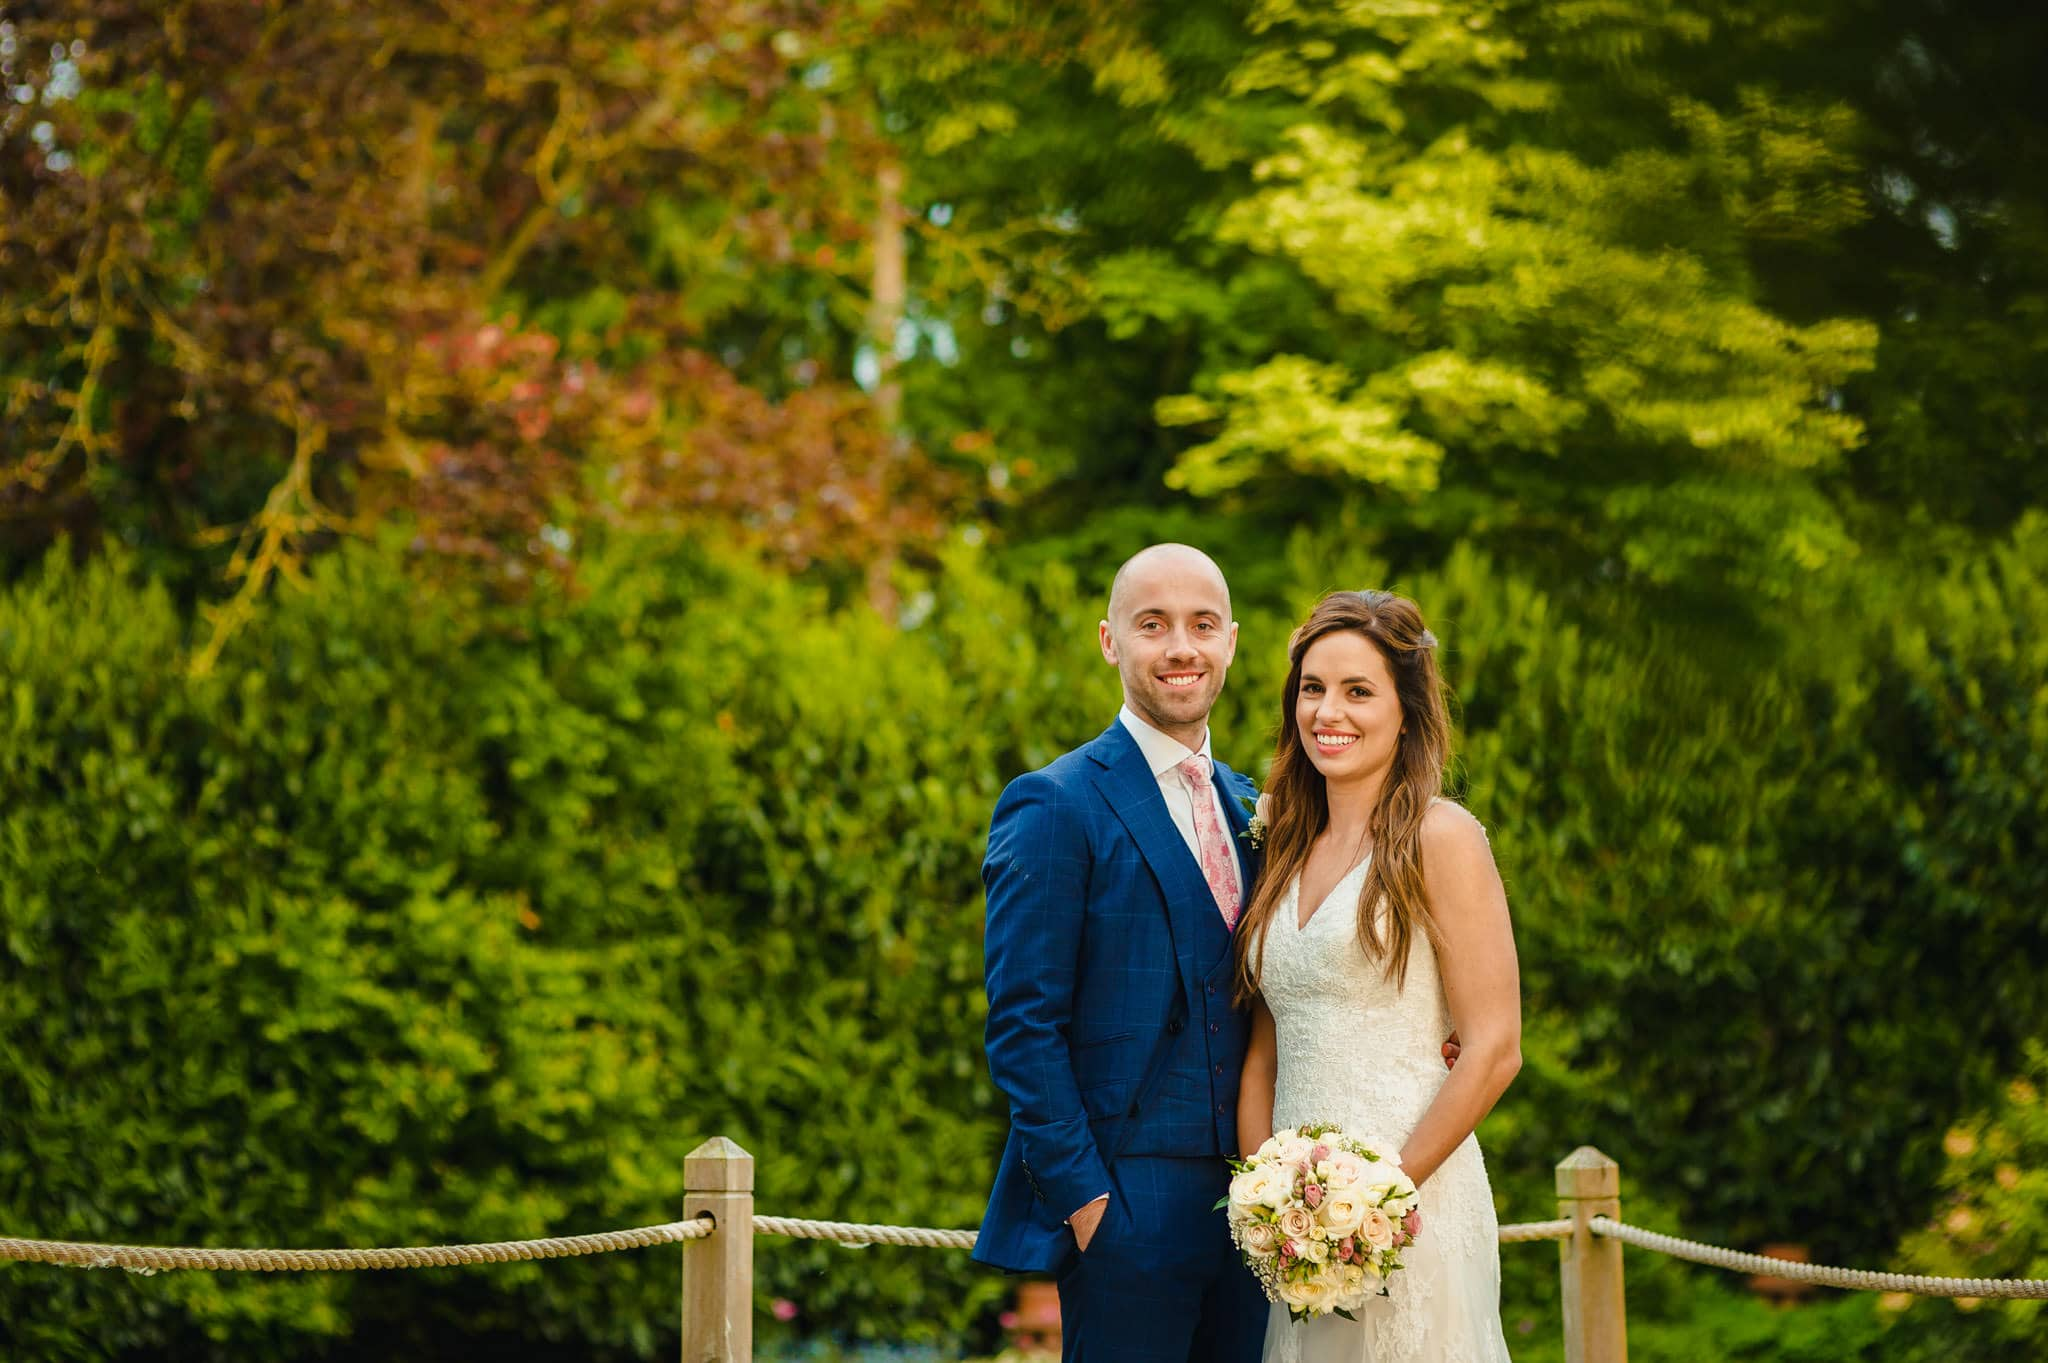 Wedding at Redhouse Barn in Stoke Prior, Worcestershire 187